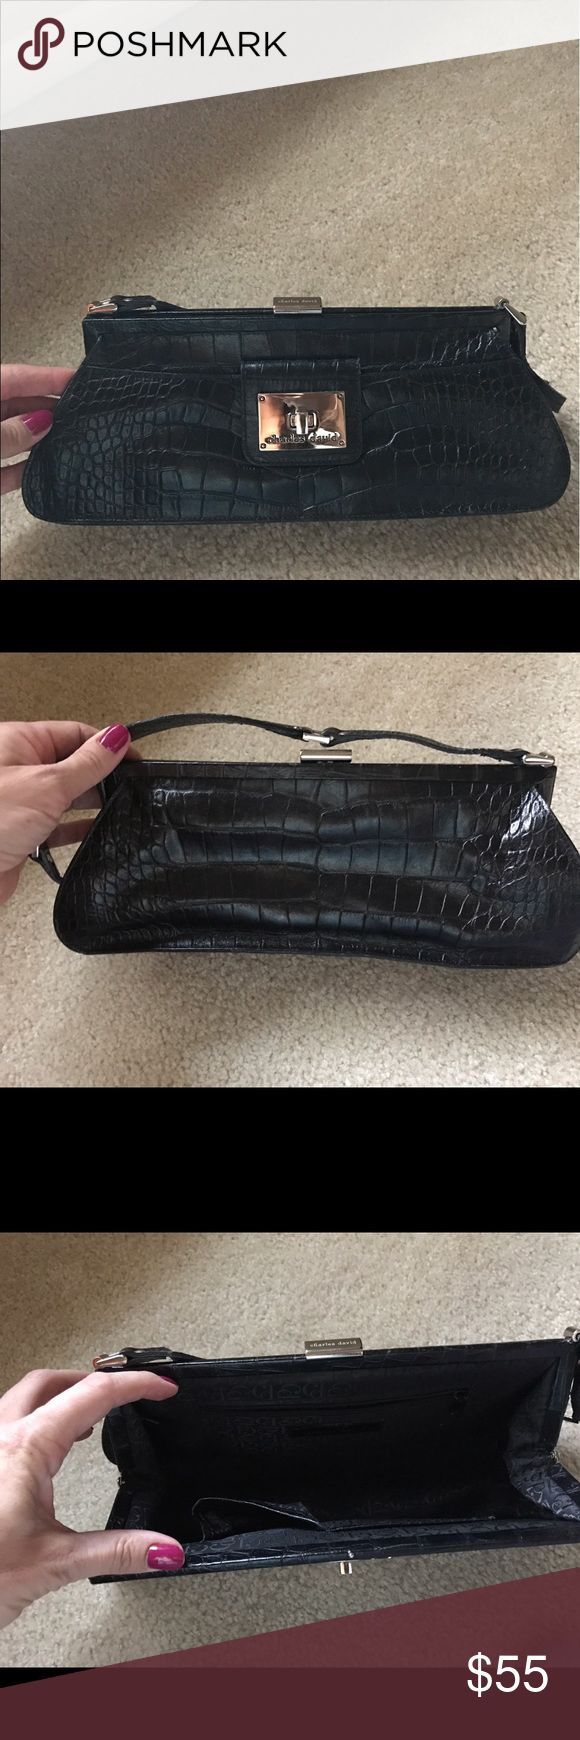 Charles David black handbag Great handbag for a night out. very nice Charles David handbag. Still in great condition.  13 inches x 3 inches x 5 inches  Color: black Charles David Bags Shoulder Bags